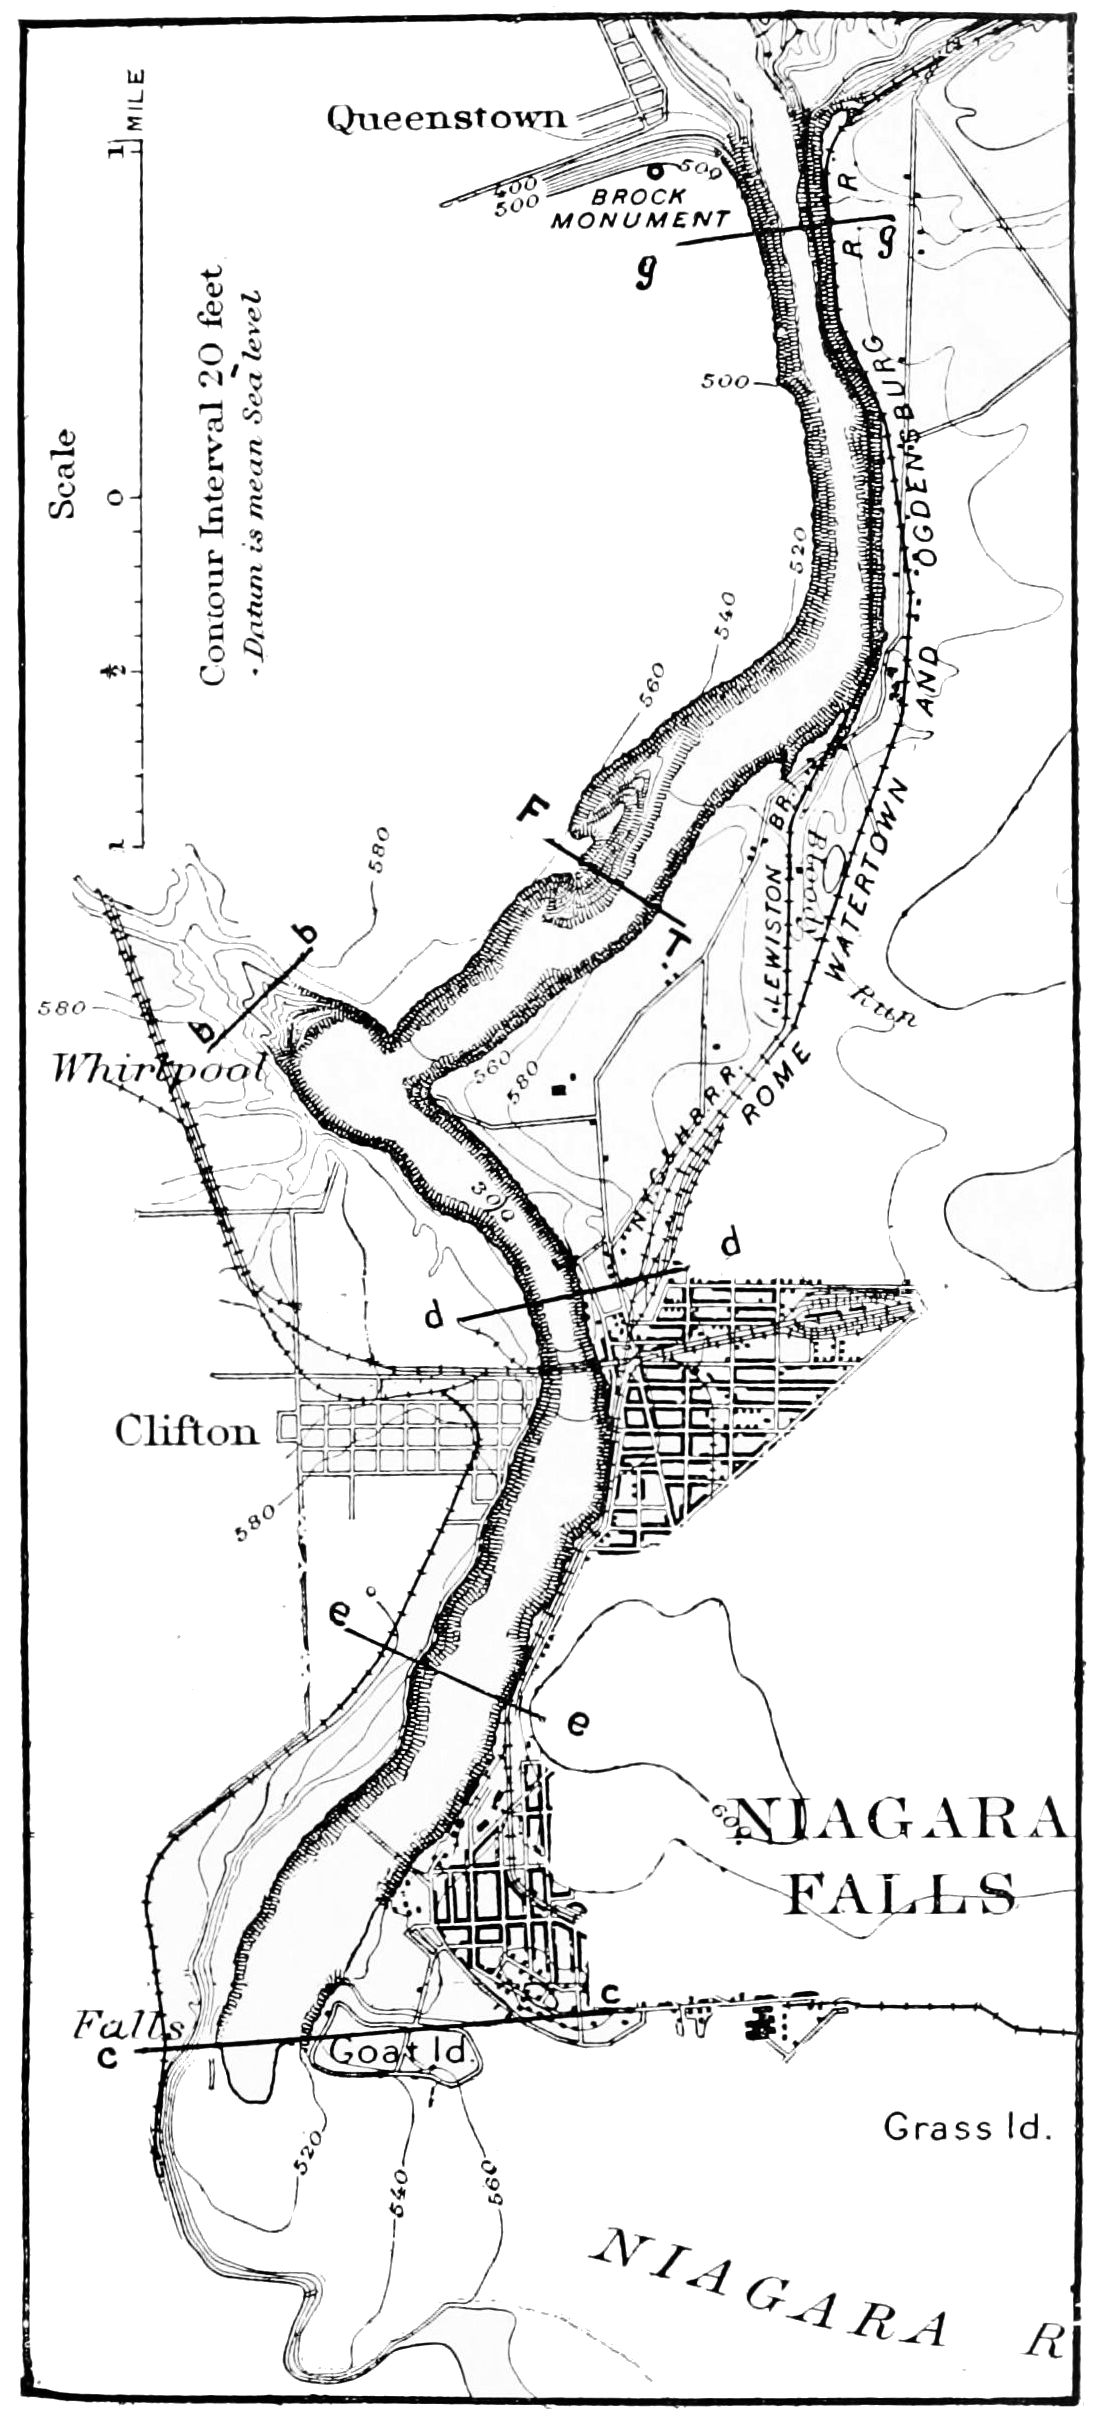 PSM V49 D021 Map of the niagara gorge.jpg